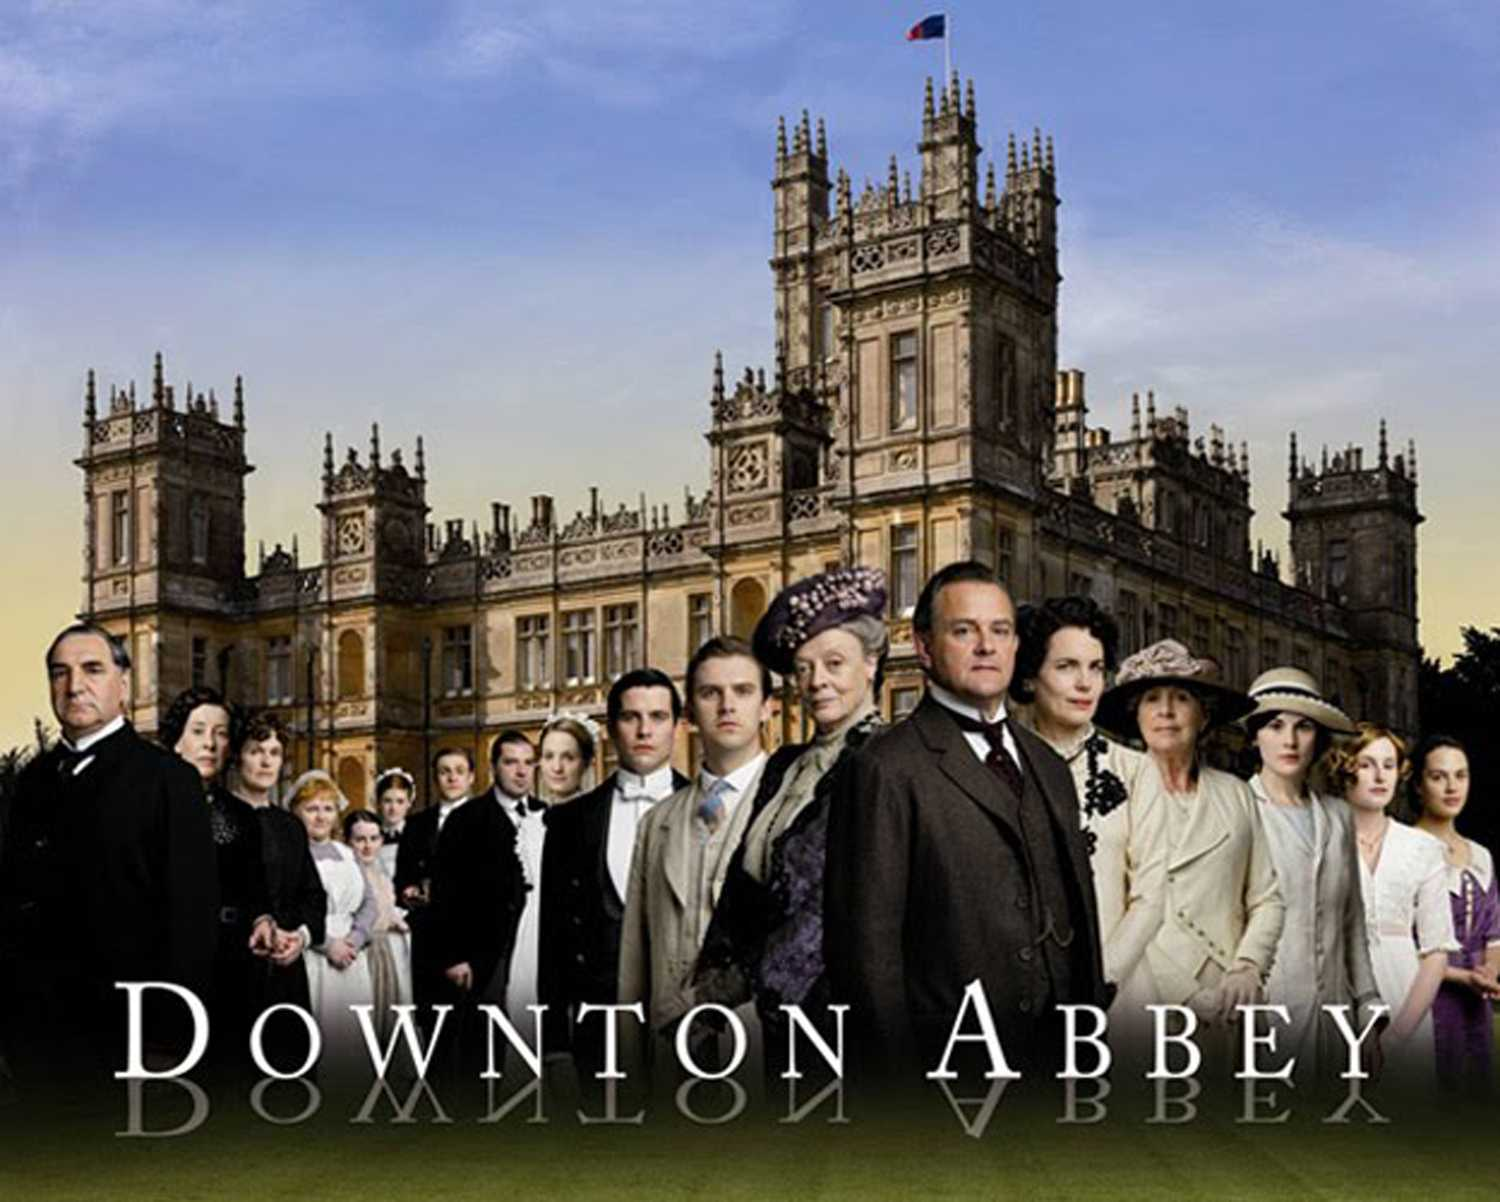 Downton Abbey airs Sundays at 8pm on PBS.